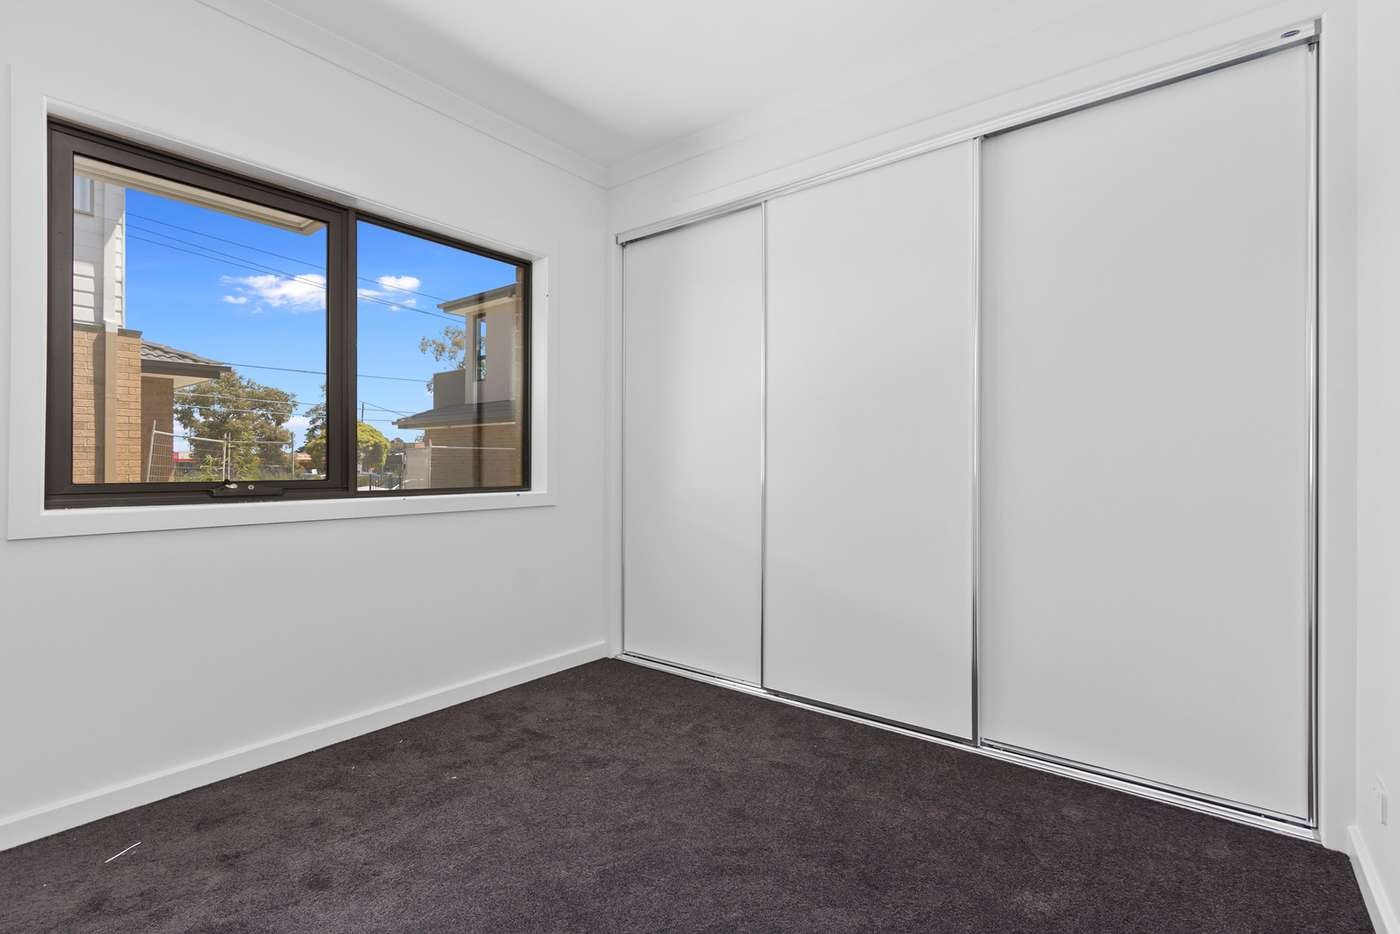 Fifth view of Homely townhouse listing, 2 Lexi Place, Kilsyth VIC 3137